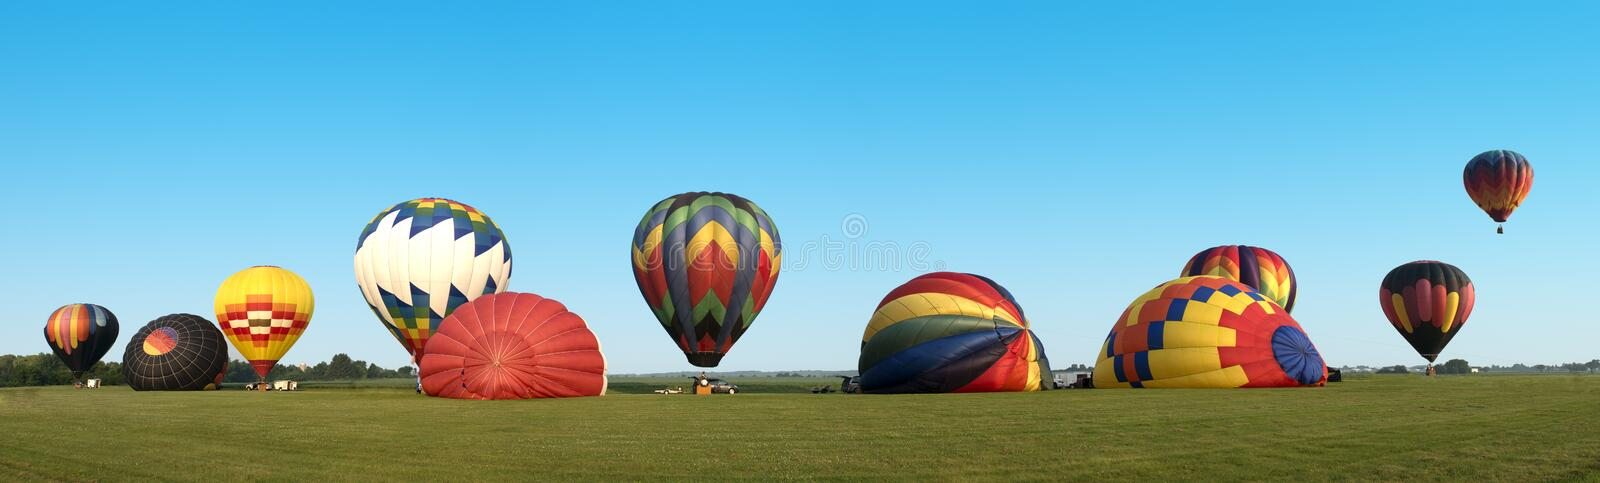 Hot Air Balloon Panoama Panoramic Banner royalty free stock photo